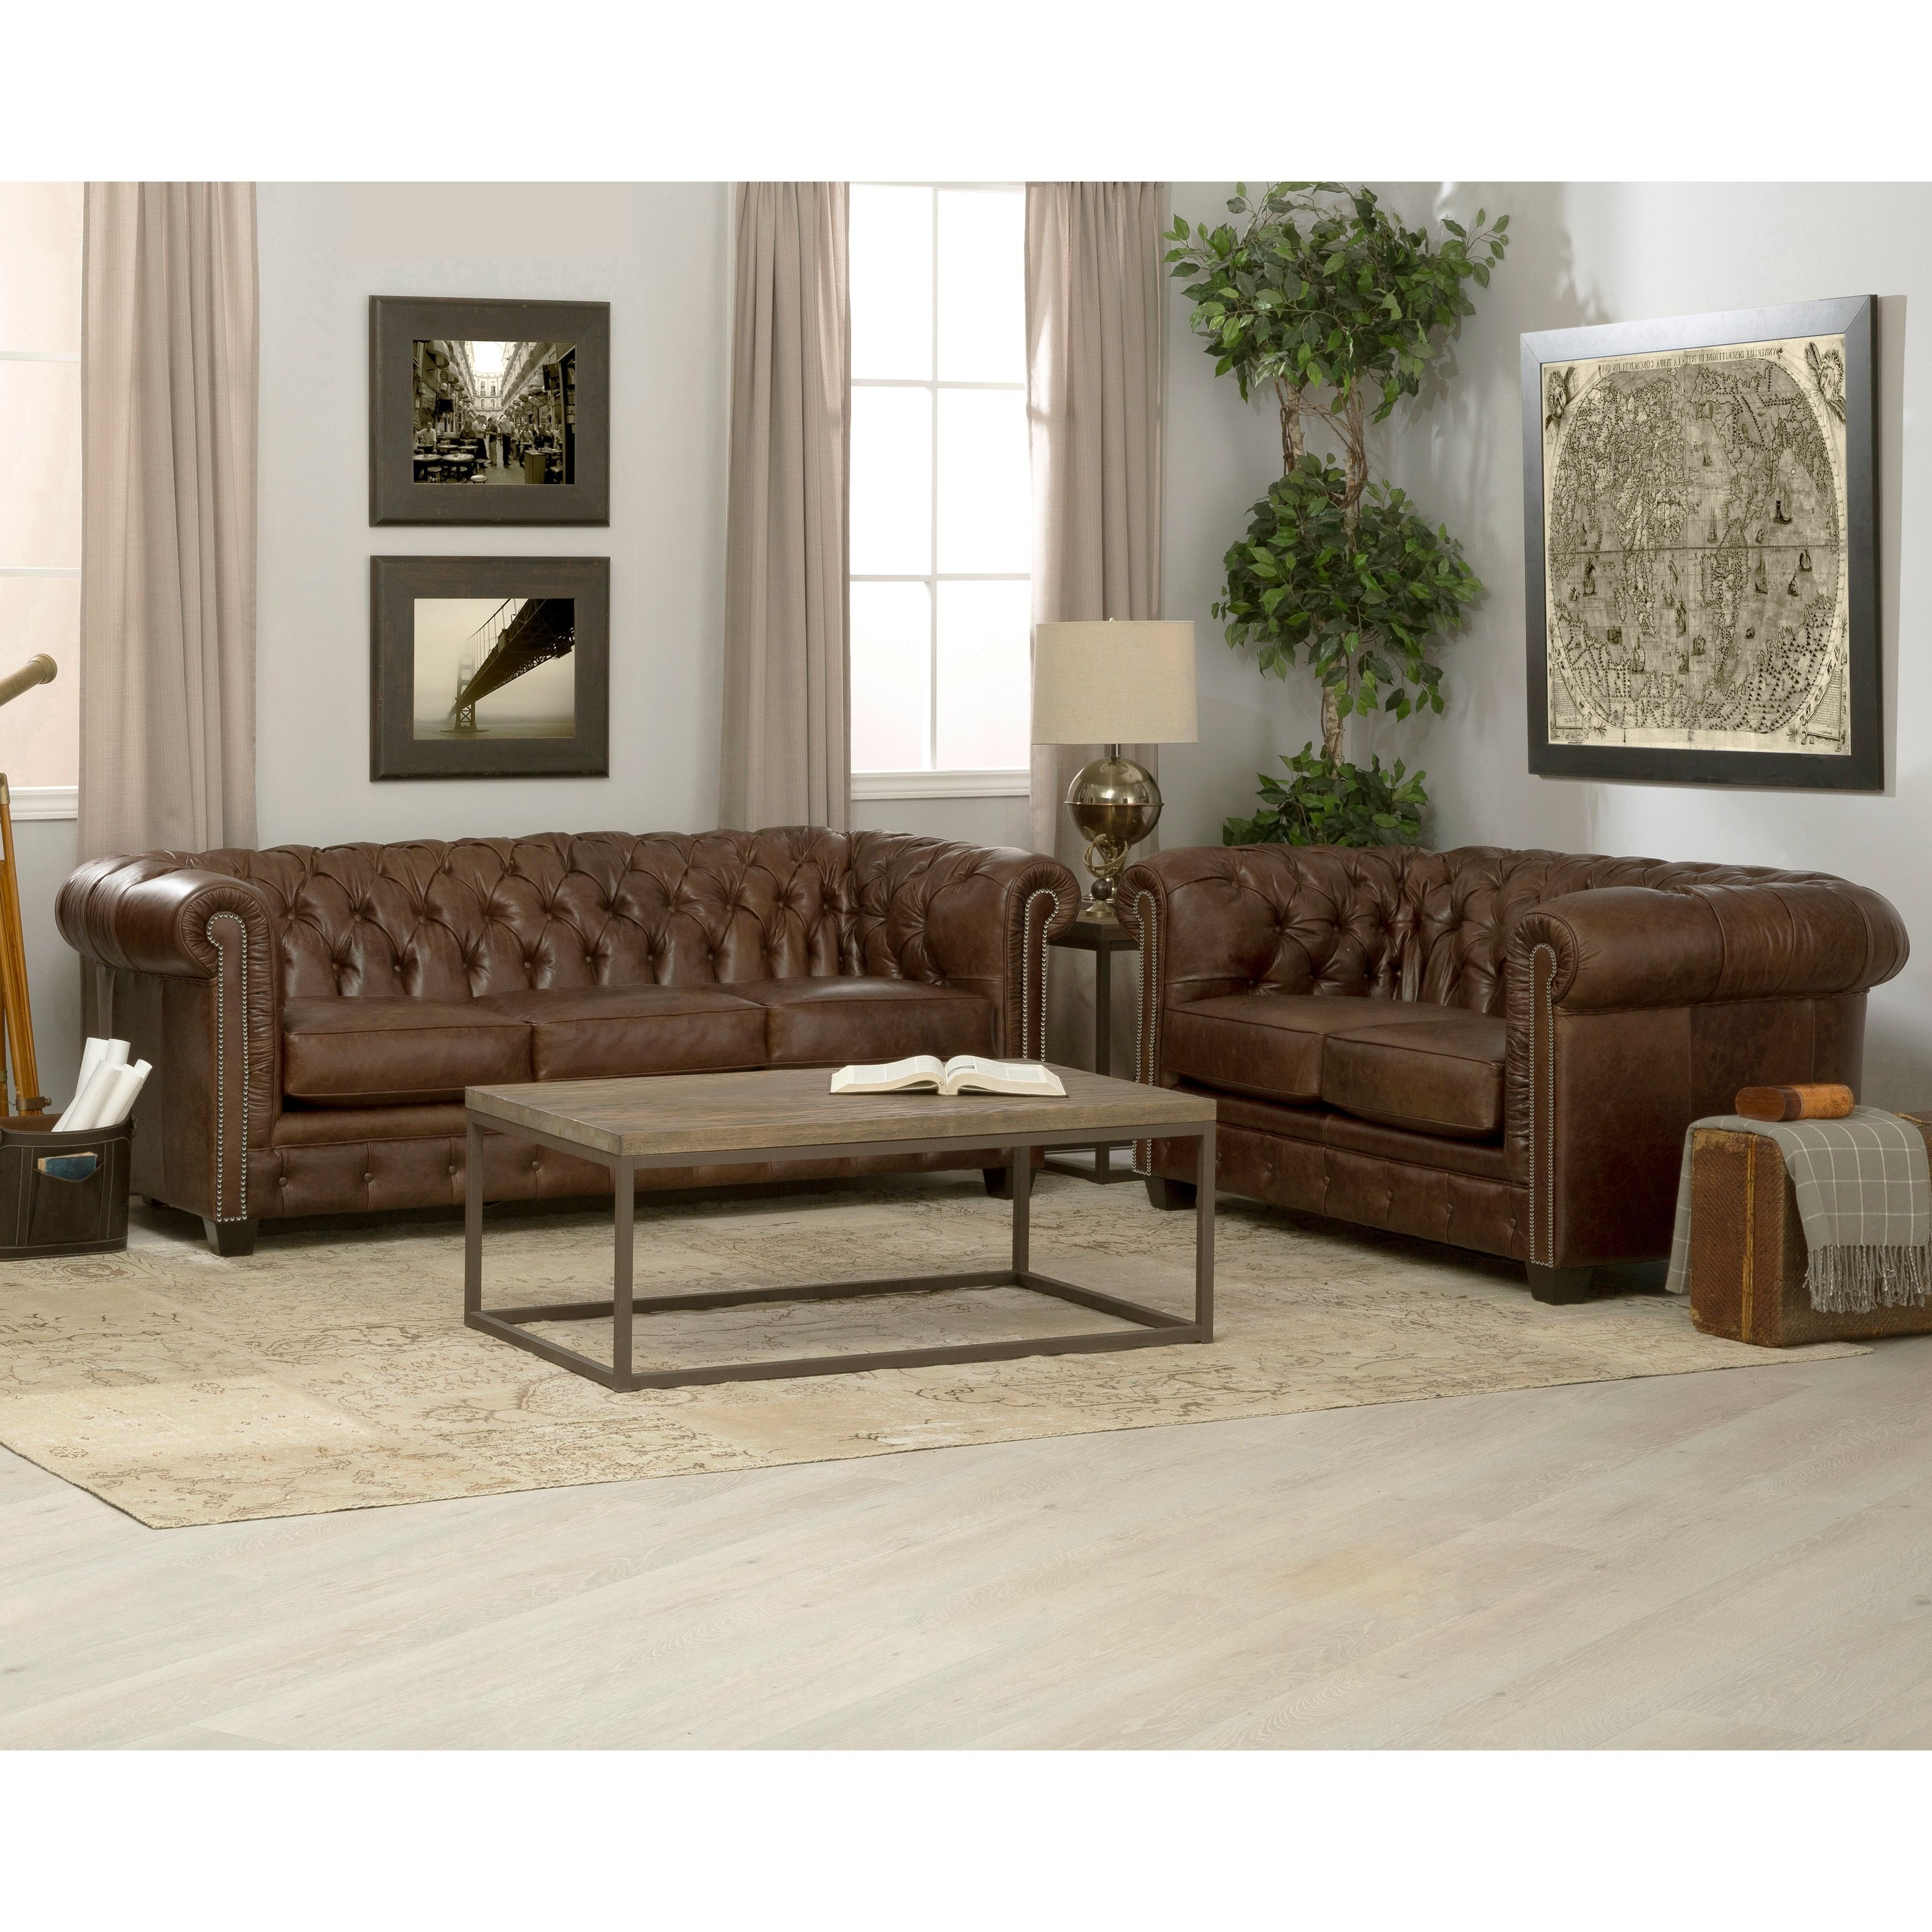 Hancock Tufted Distressed Italian Chesterfield Leather Sofa and